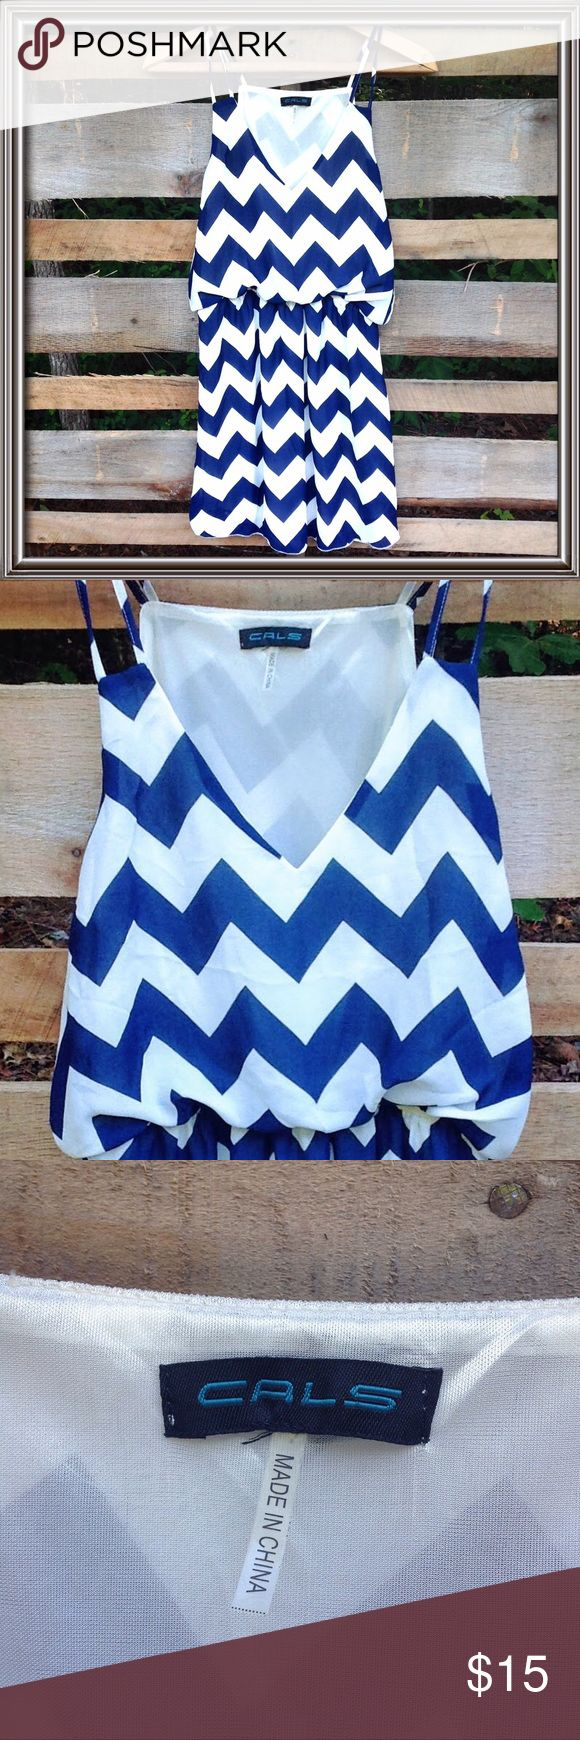 "CALS dress with Chevron Print This adorable blue & white Chevron Print Dress has an elastic waist and is lined.  There is no size tag, but I know it is a small.  It was my daughter's dress 100% polyester  Approximate measurements are - 16.5"" bust and 33"" long  It is in VERY good condition!! CALS Dresses"